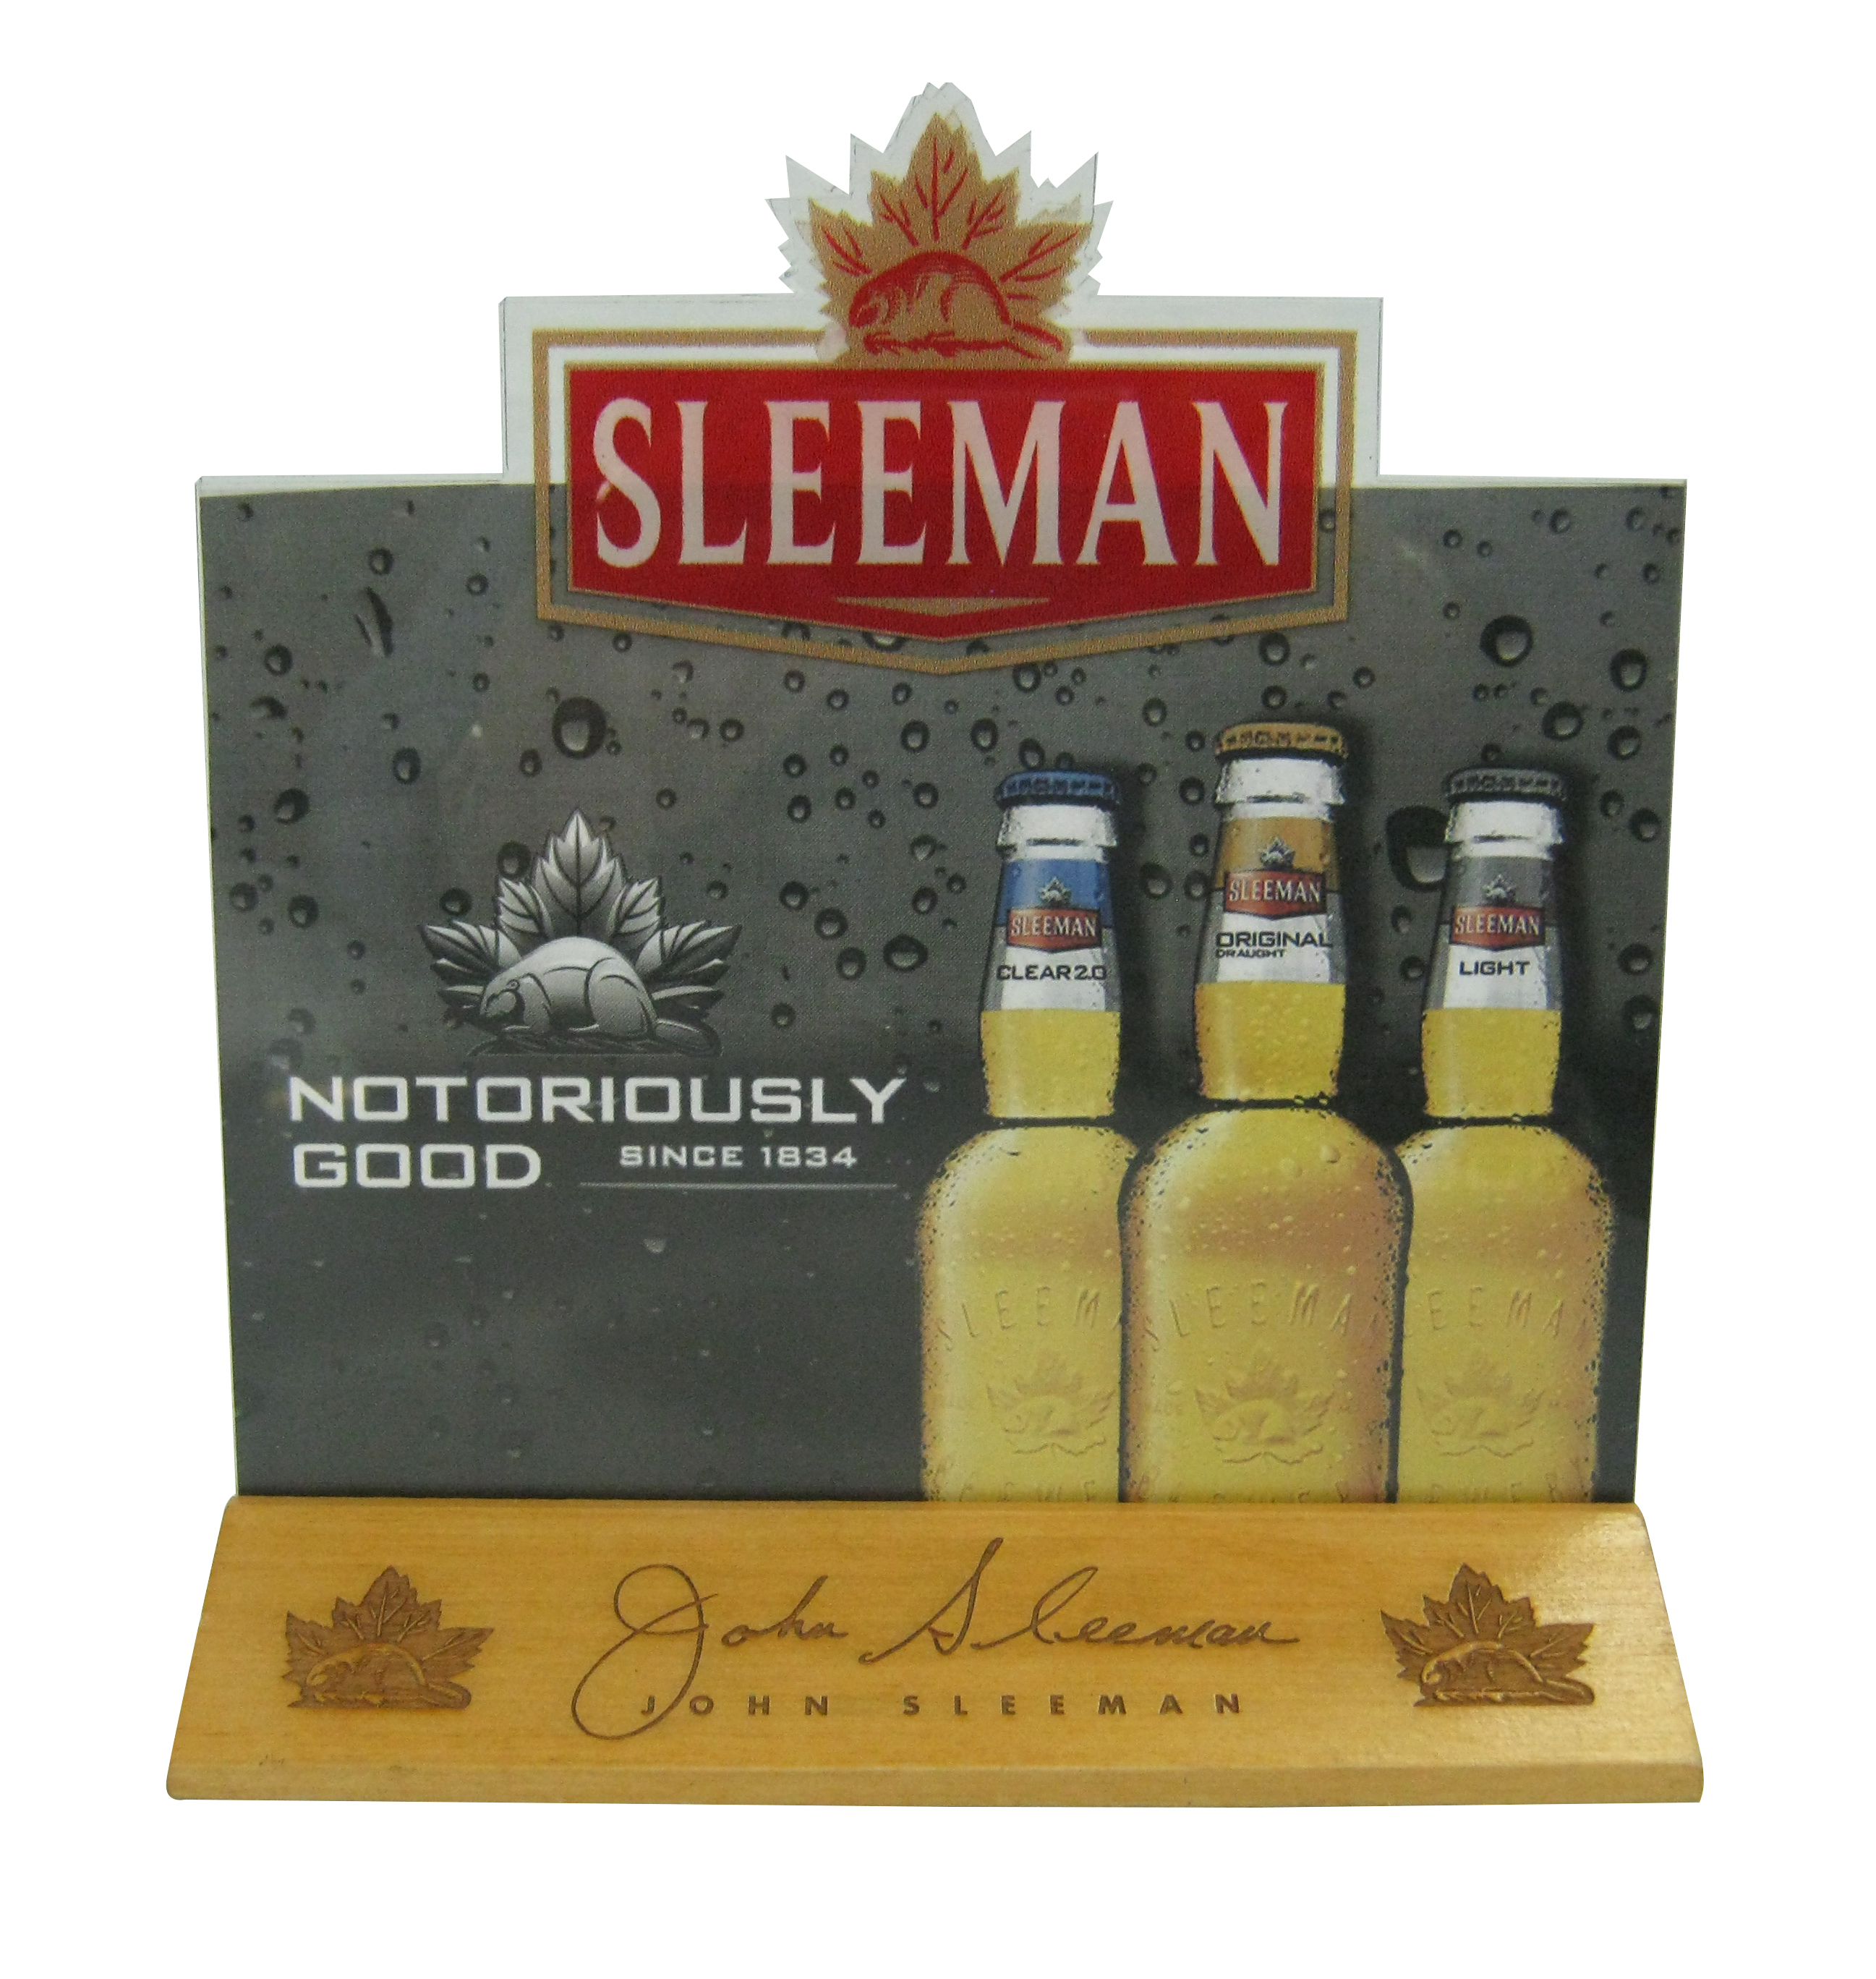 Sleeman Table Tent Holder